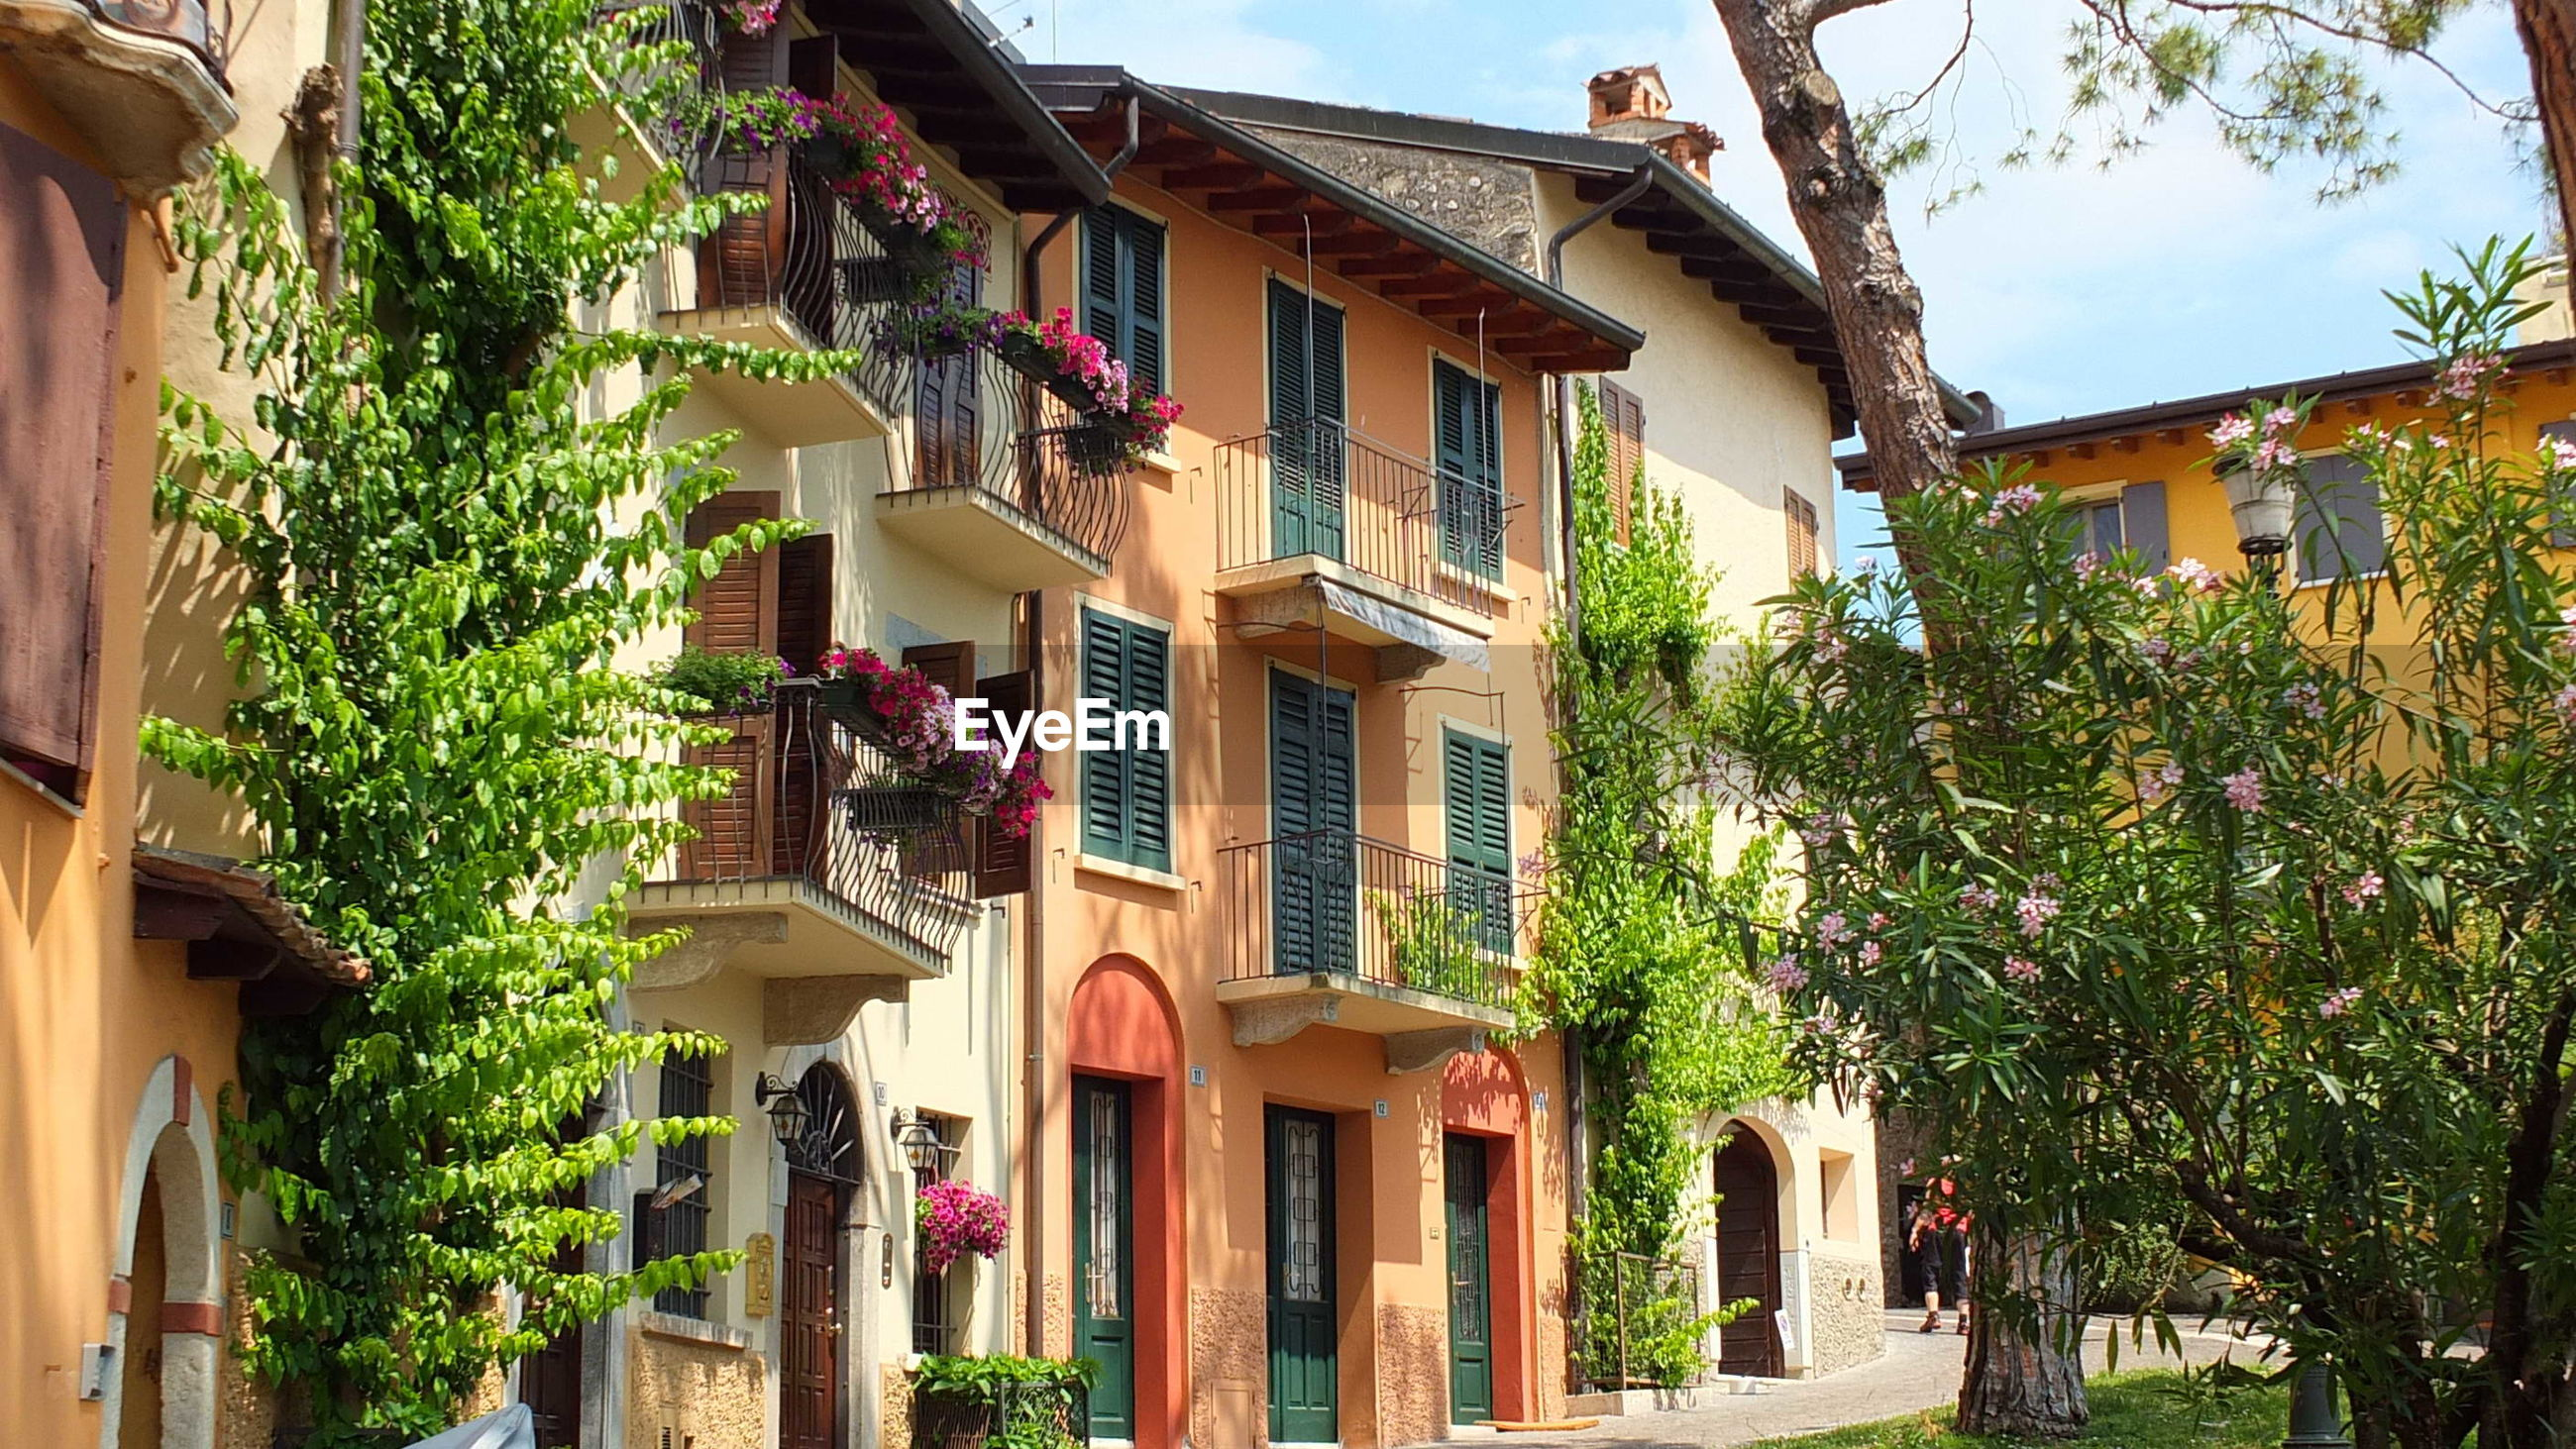 architecture, building exterior, built structure, tree, house, no people, residential building, outdoors, plant, sky, day